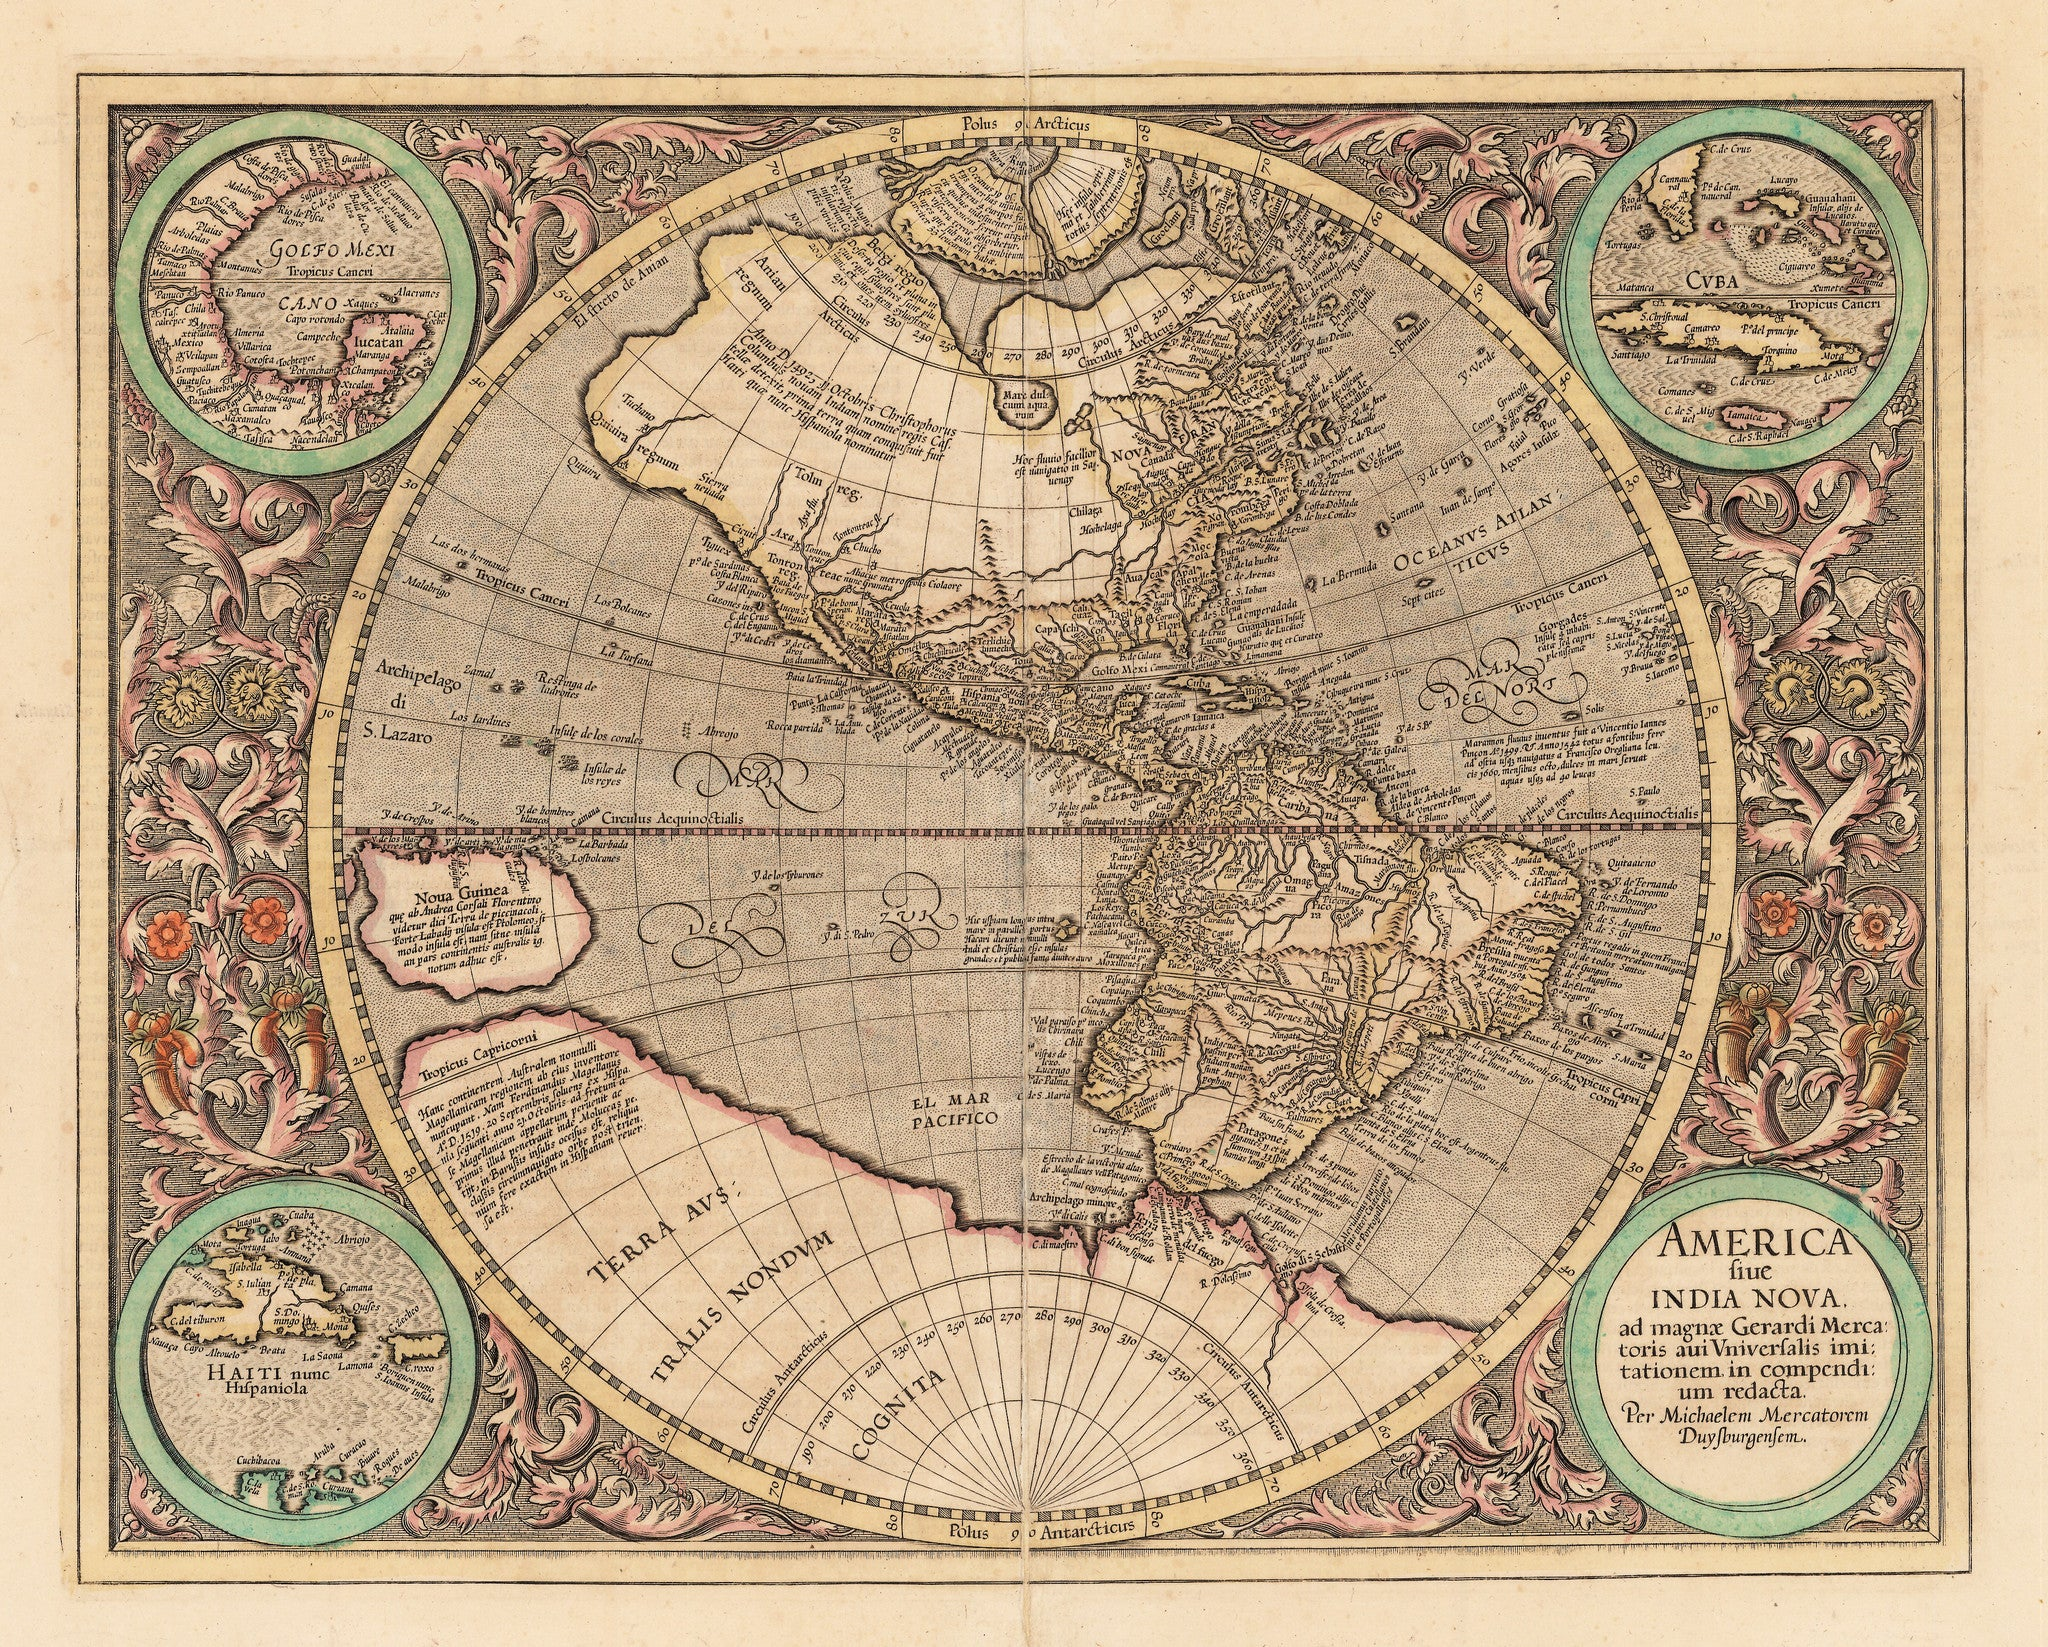 Authentic Antique Map of Western Hemisphere: America sive India Nova ad magnae Gerardi Mercatoris avi universalis imitationem incompendium redacta  By: Michael Mercator  Date: 1613 / Duisberg